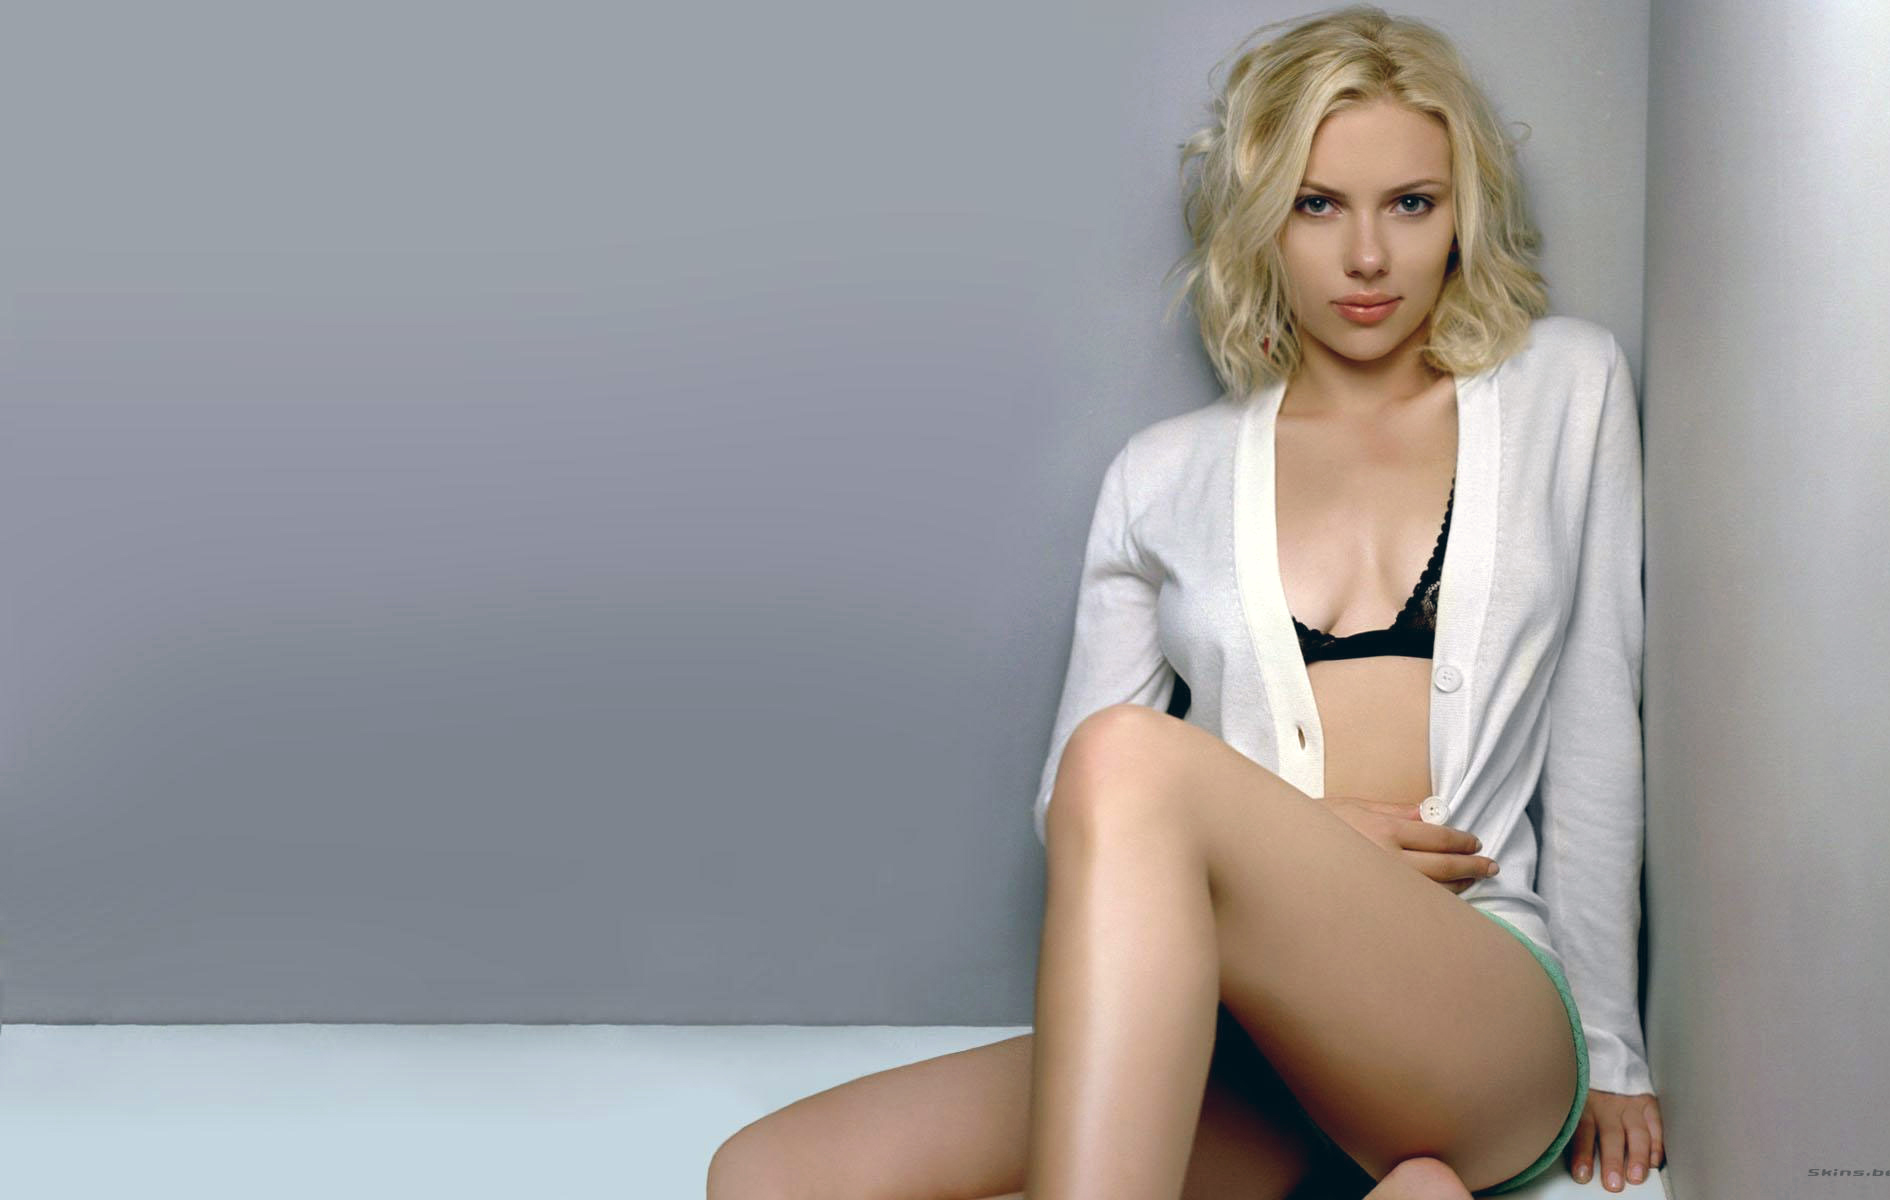 Scarlett Johanson underwear - Scarlett Johansson Net Worth, Awards, Movies and Private Life, Pictures and Wallpapers